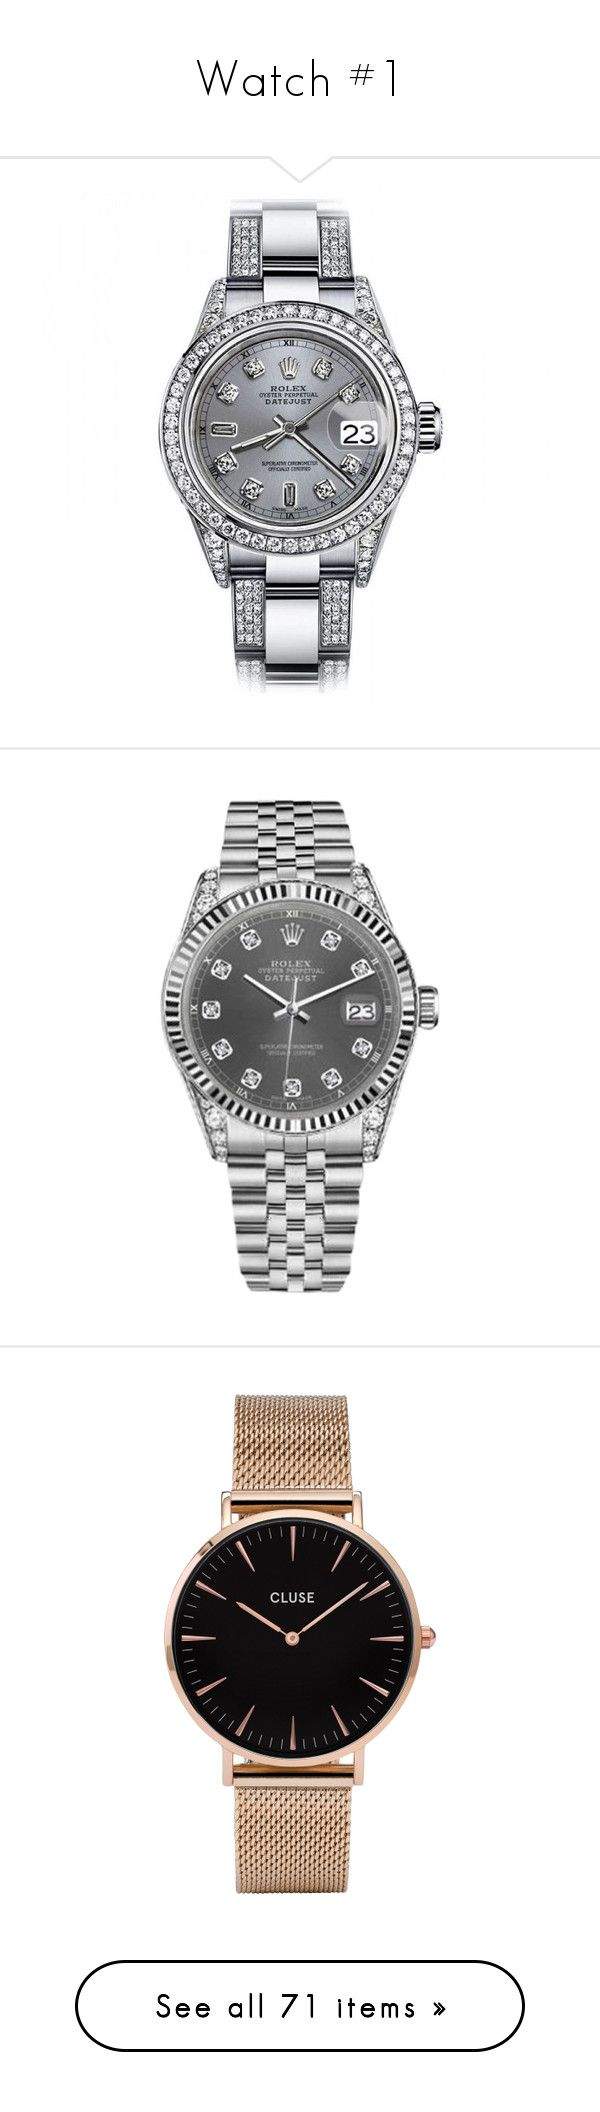 """""""Watch #1"""" by asoc10 ❤ liked on Polyvore featuring jewelry, watches, diamond wrist watch, rolex wrist watch, preowned watches, rolex watches, preowned jewelry, unisex watches, stainless steel wrist watch and stainless steel watches"""